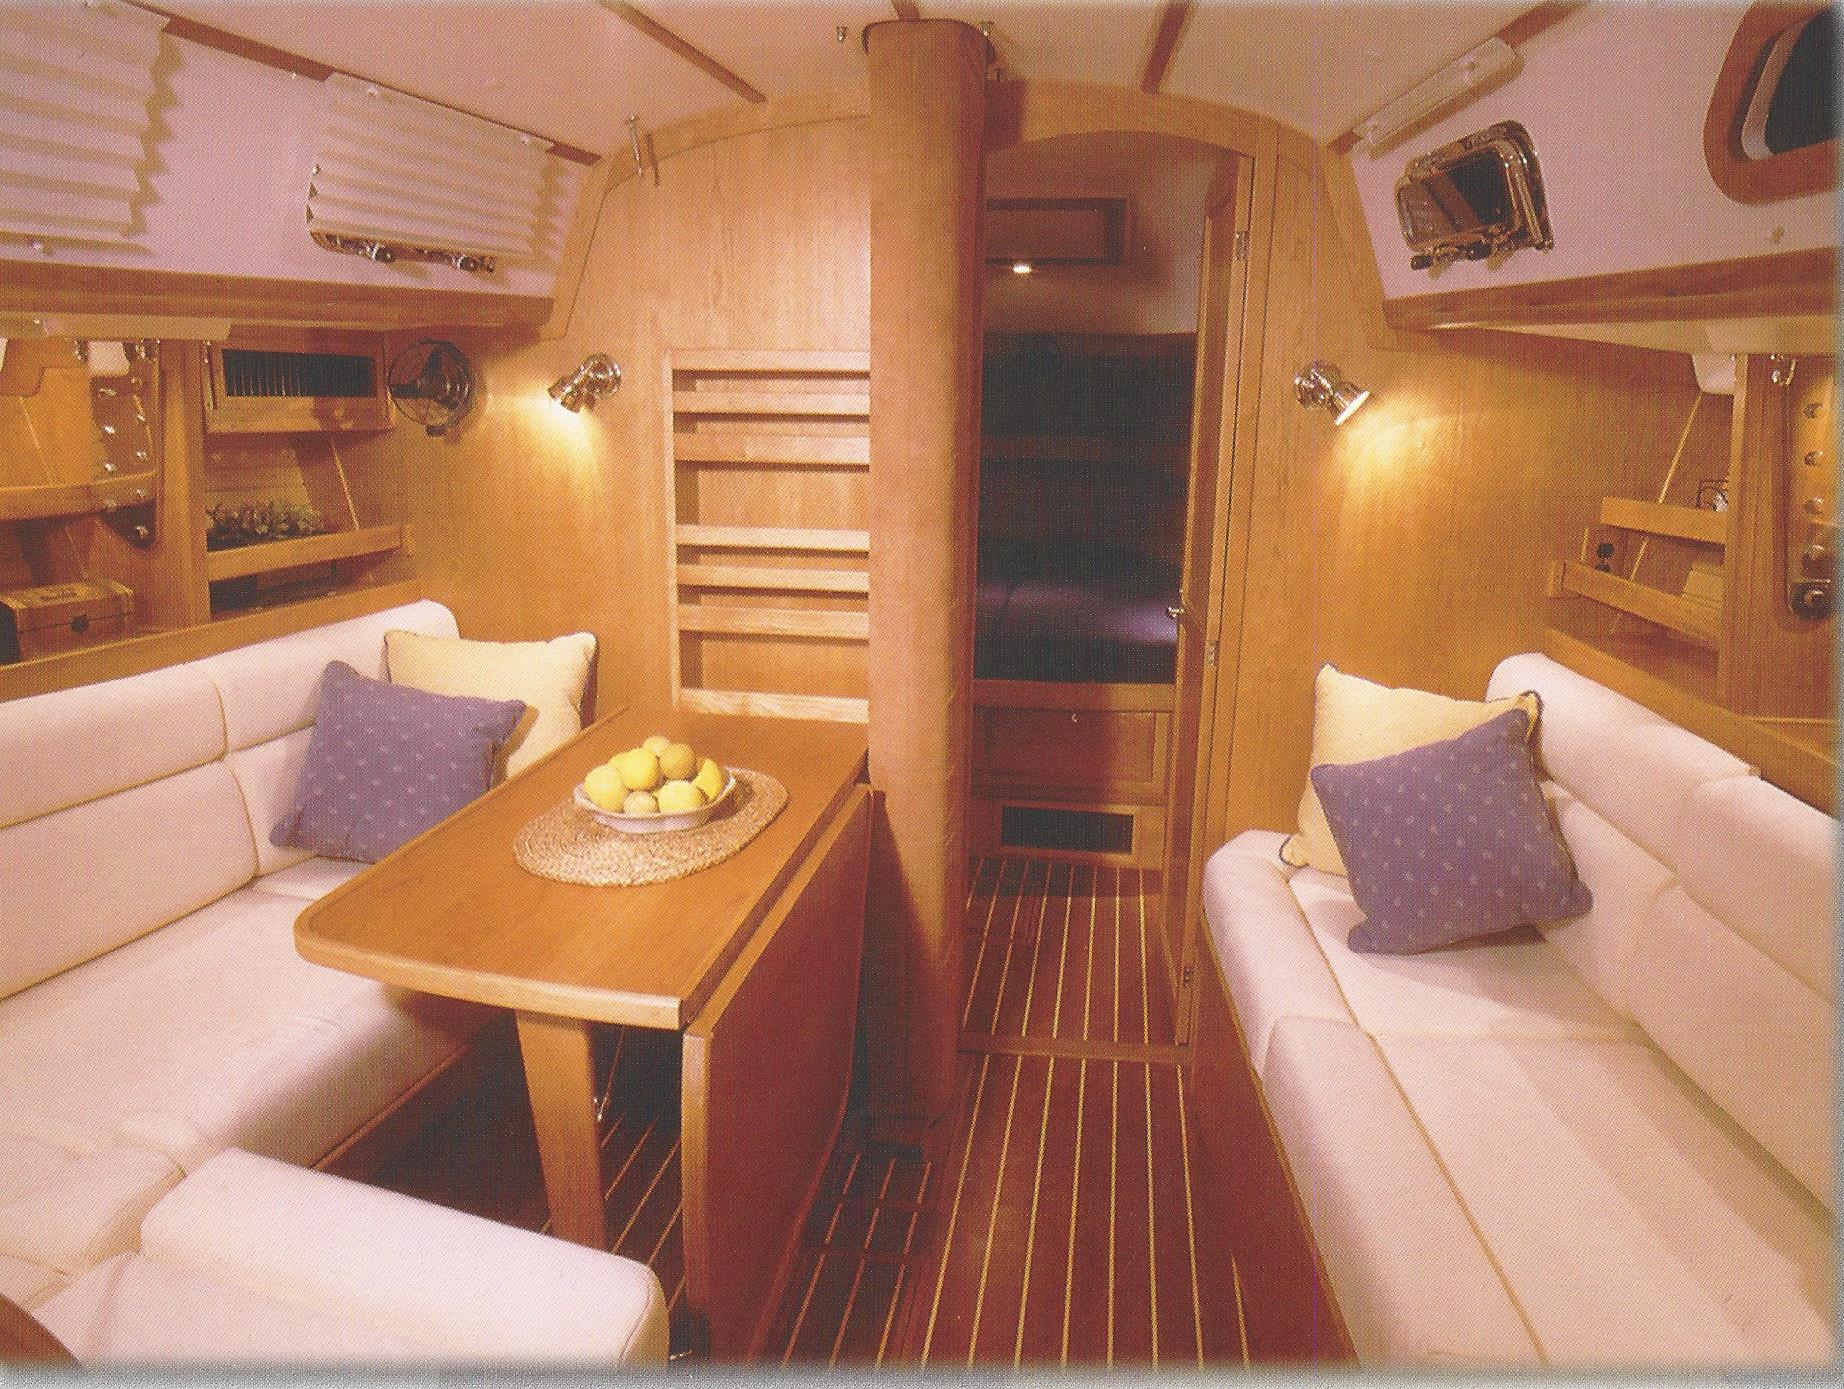 C:\Users\Jim Taylor\Desktop\JTYD\JT_Promo\WebSite\2016\Designs\Production\111- Sabre 386\111_Interior Fwd.jpg